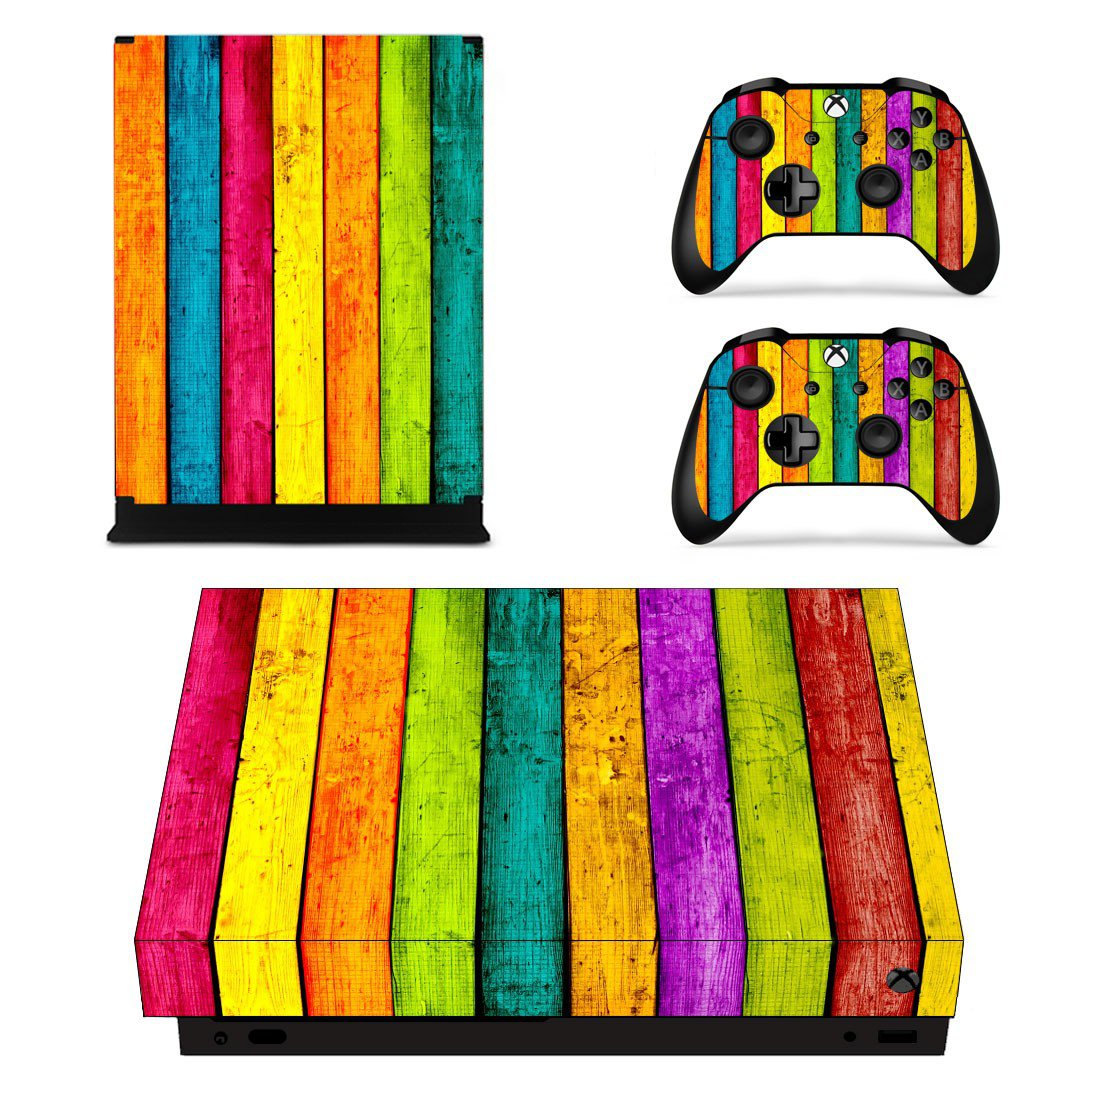 Colorful Wooden Texture xbox one X skin decal for console and 2 controllers